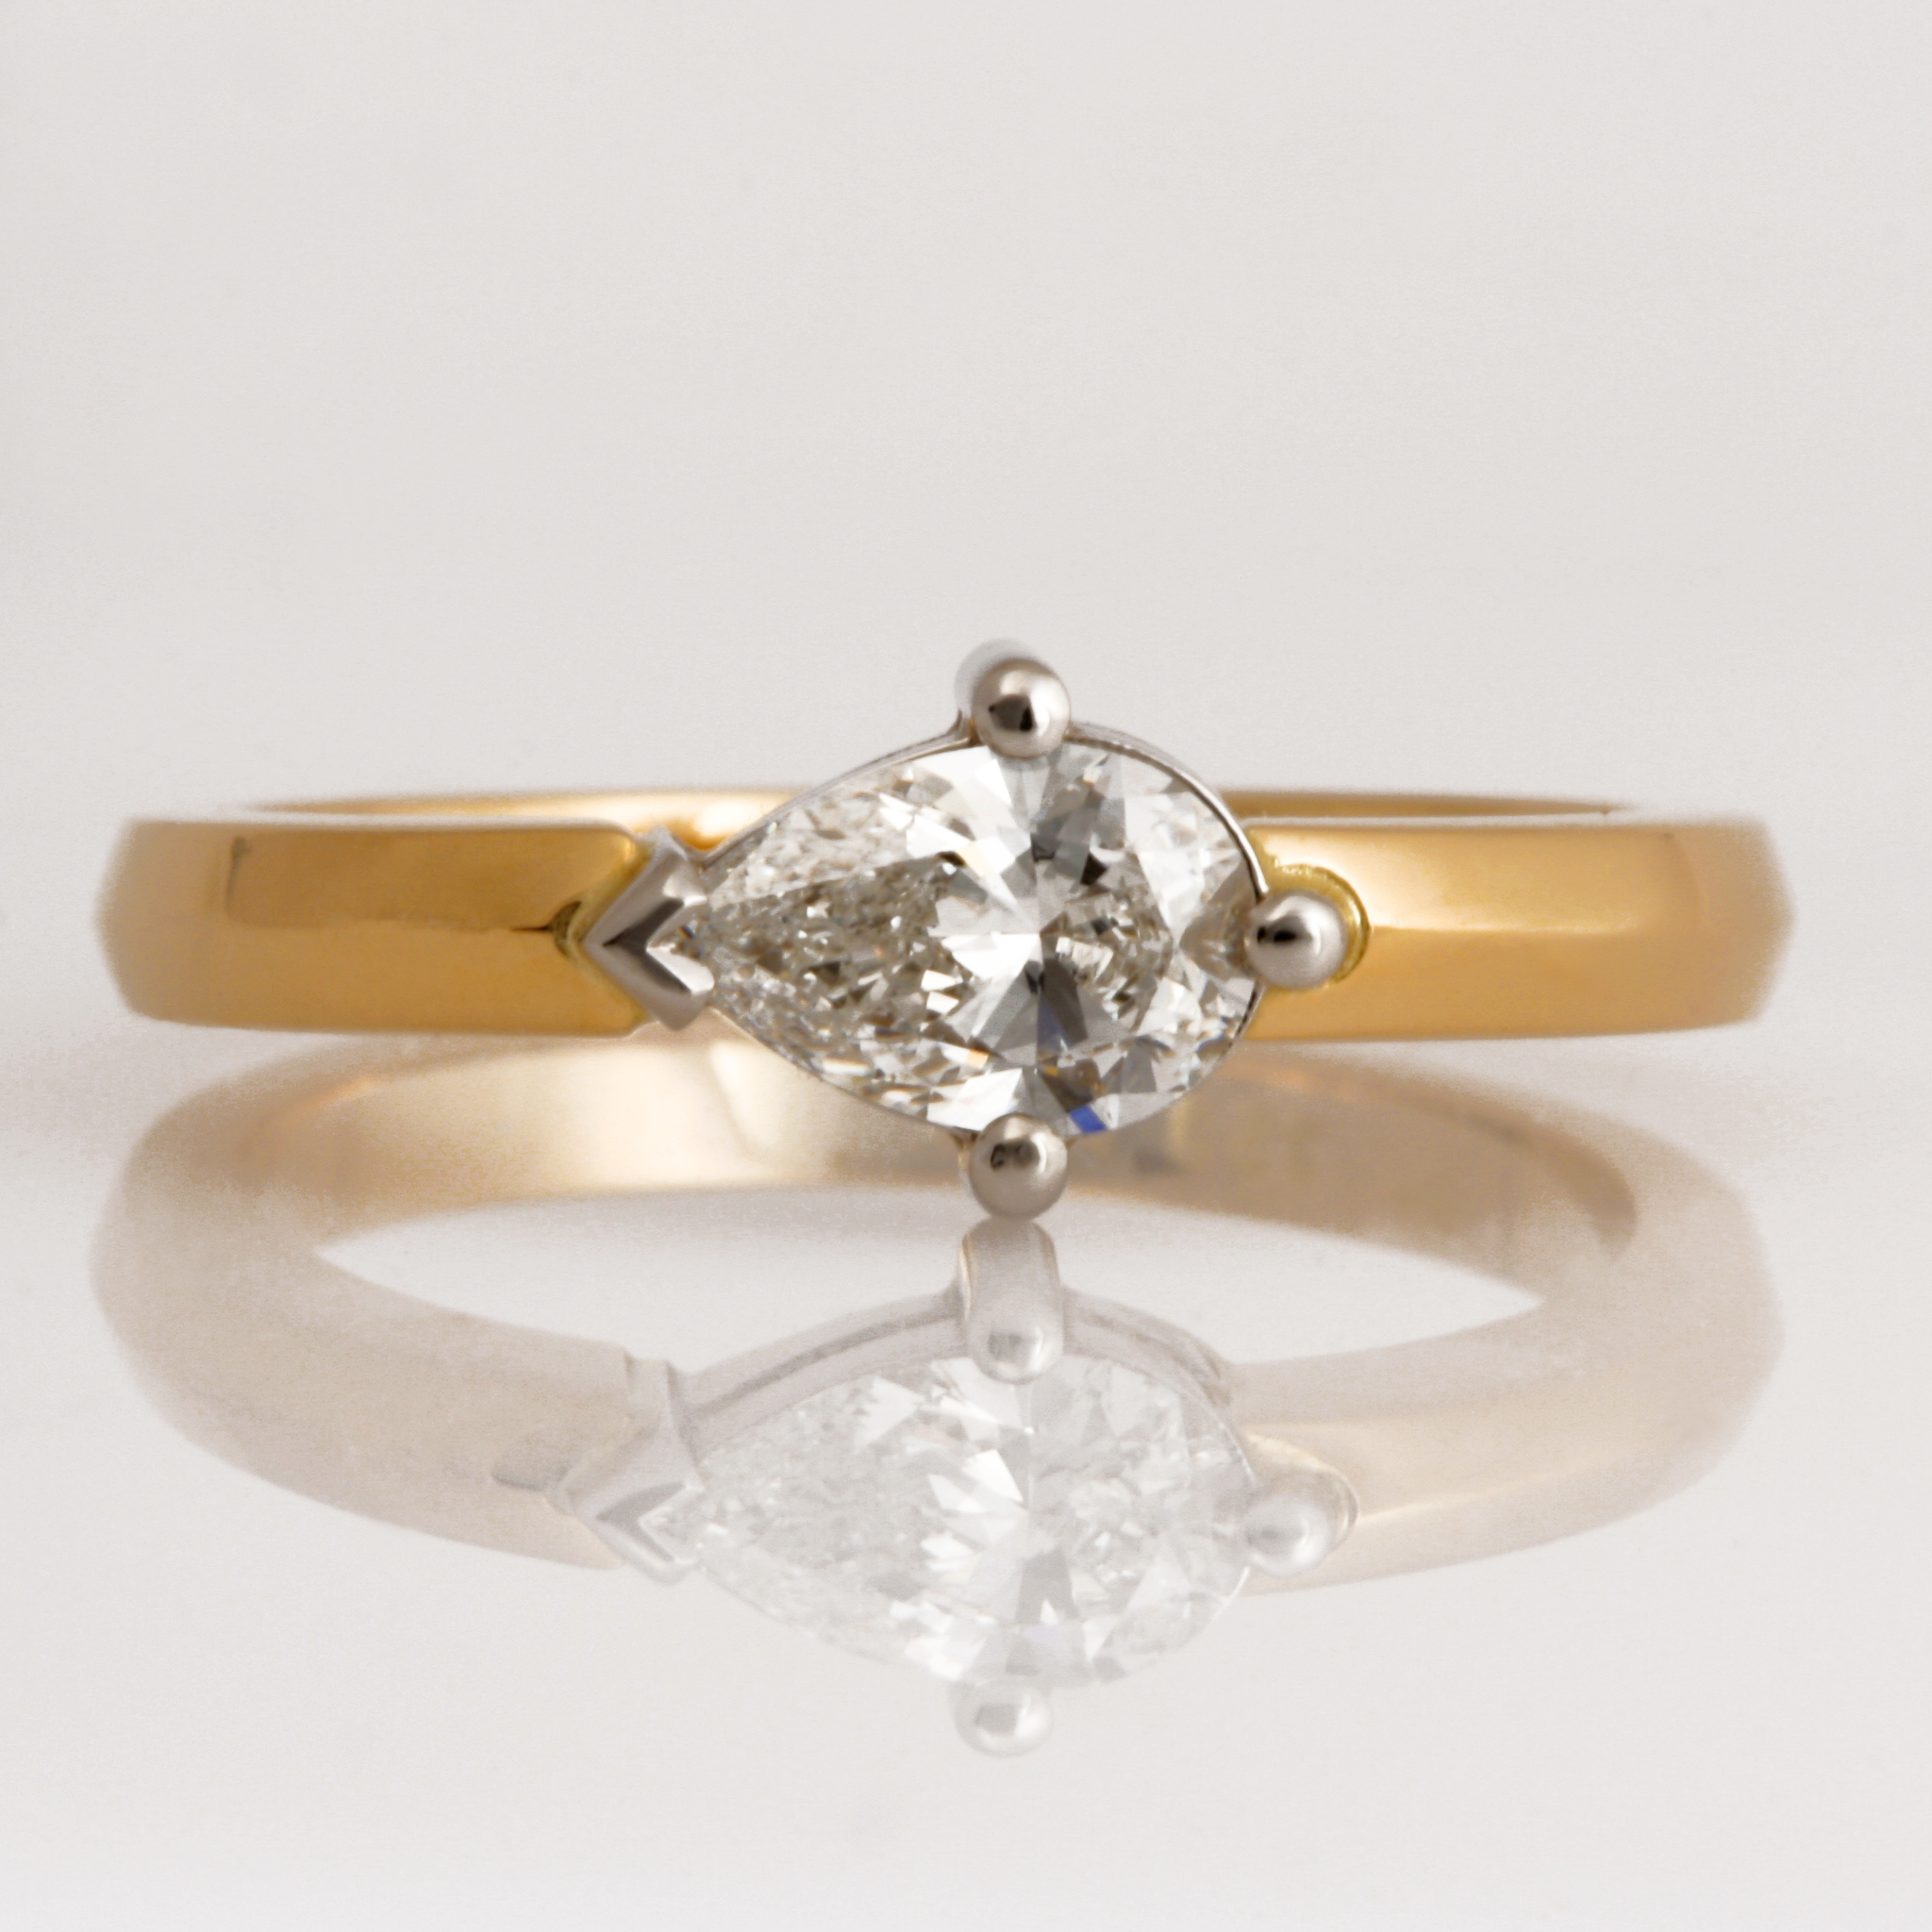 Handmade Platinum and 18ct yellow gold, pear shaped diamond Engagement ring